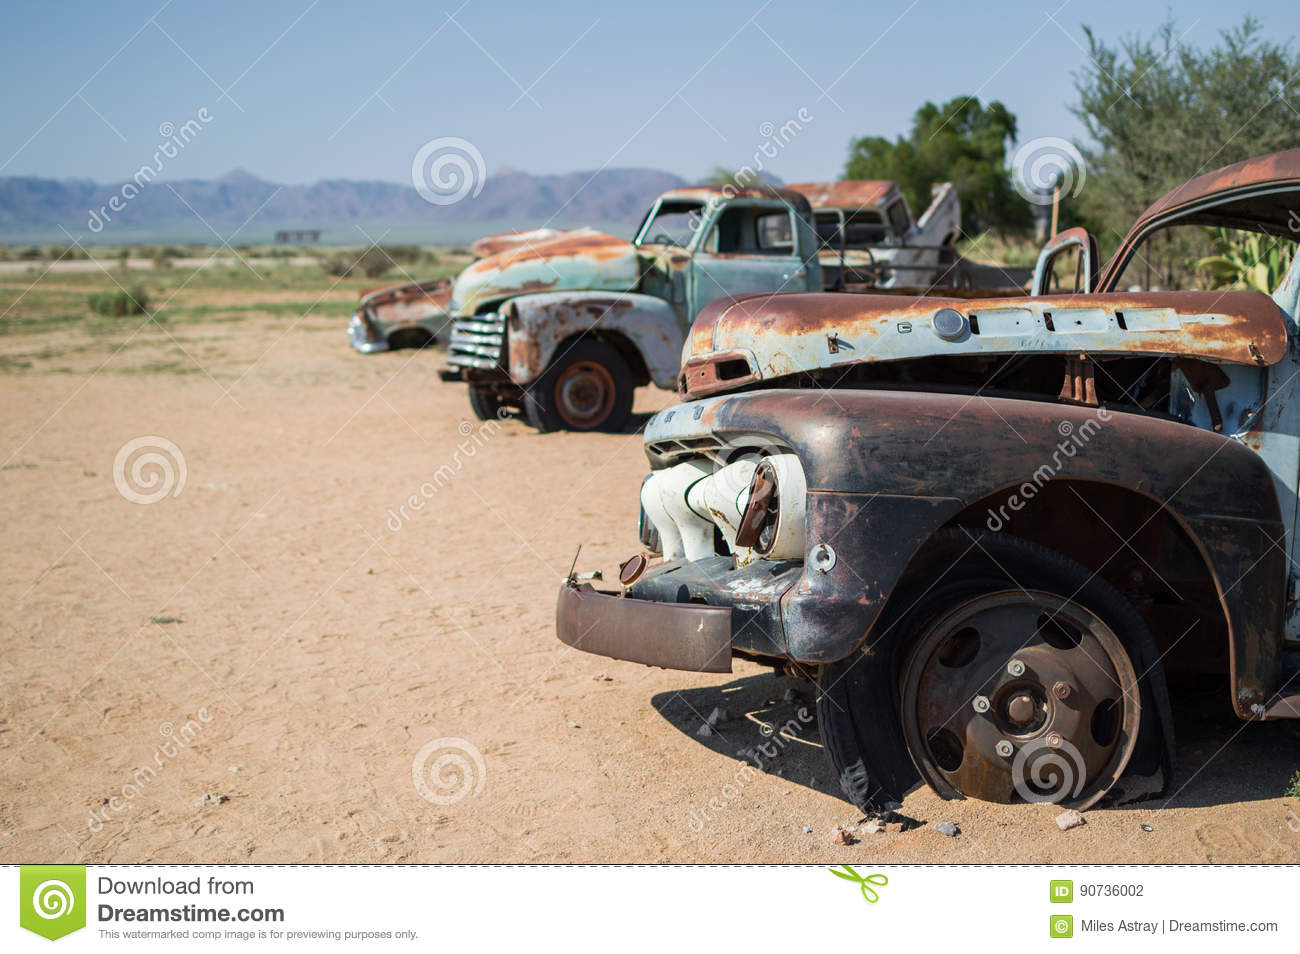 Old Timer Car Wrecks In A Desert Landscape In Solitaire, Namibia ...